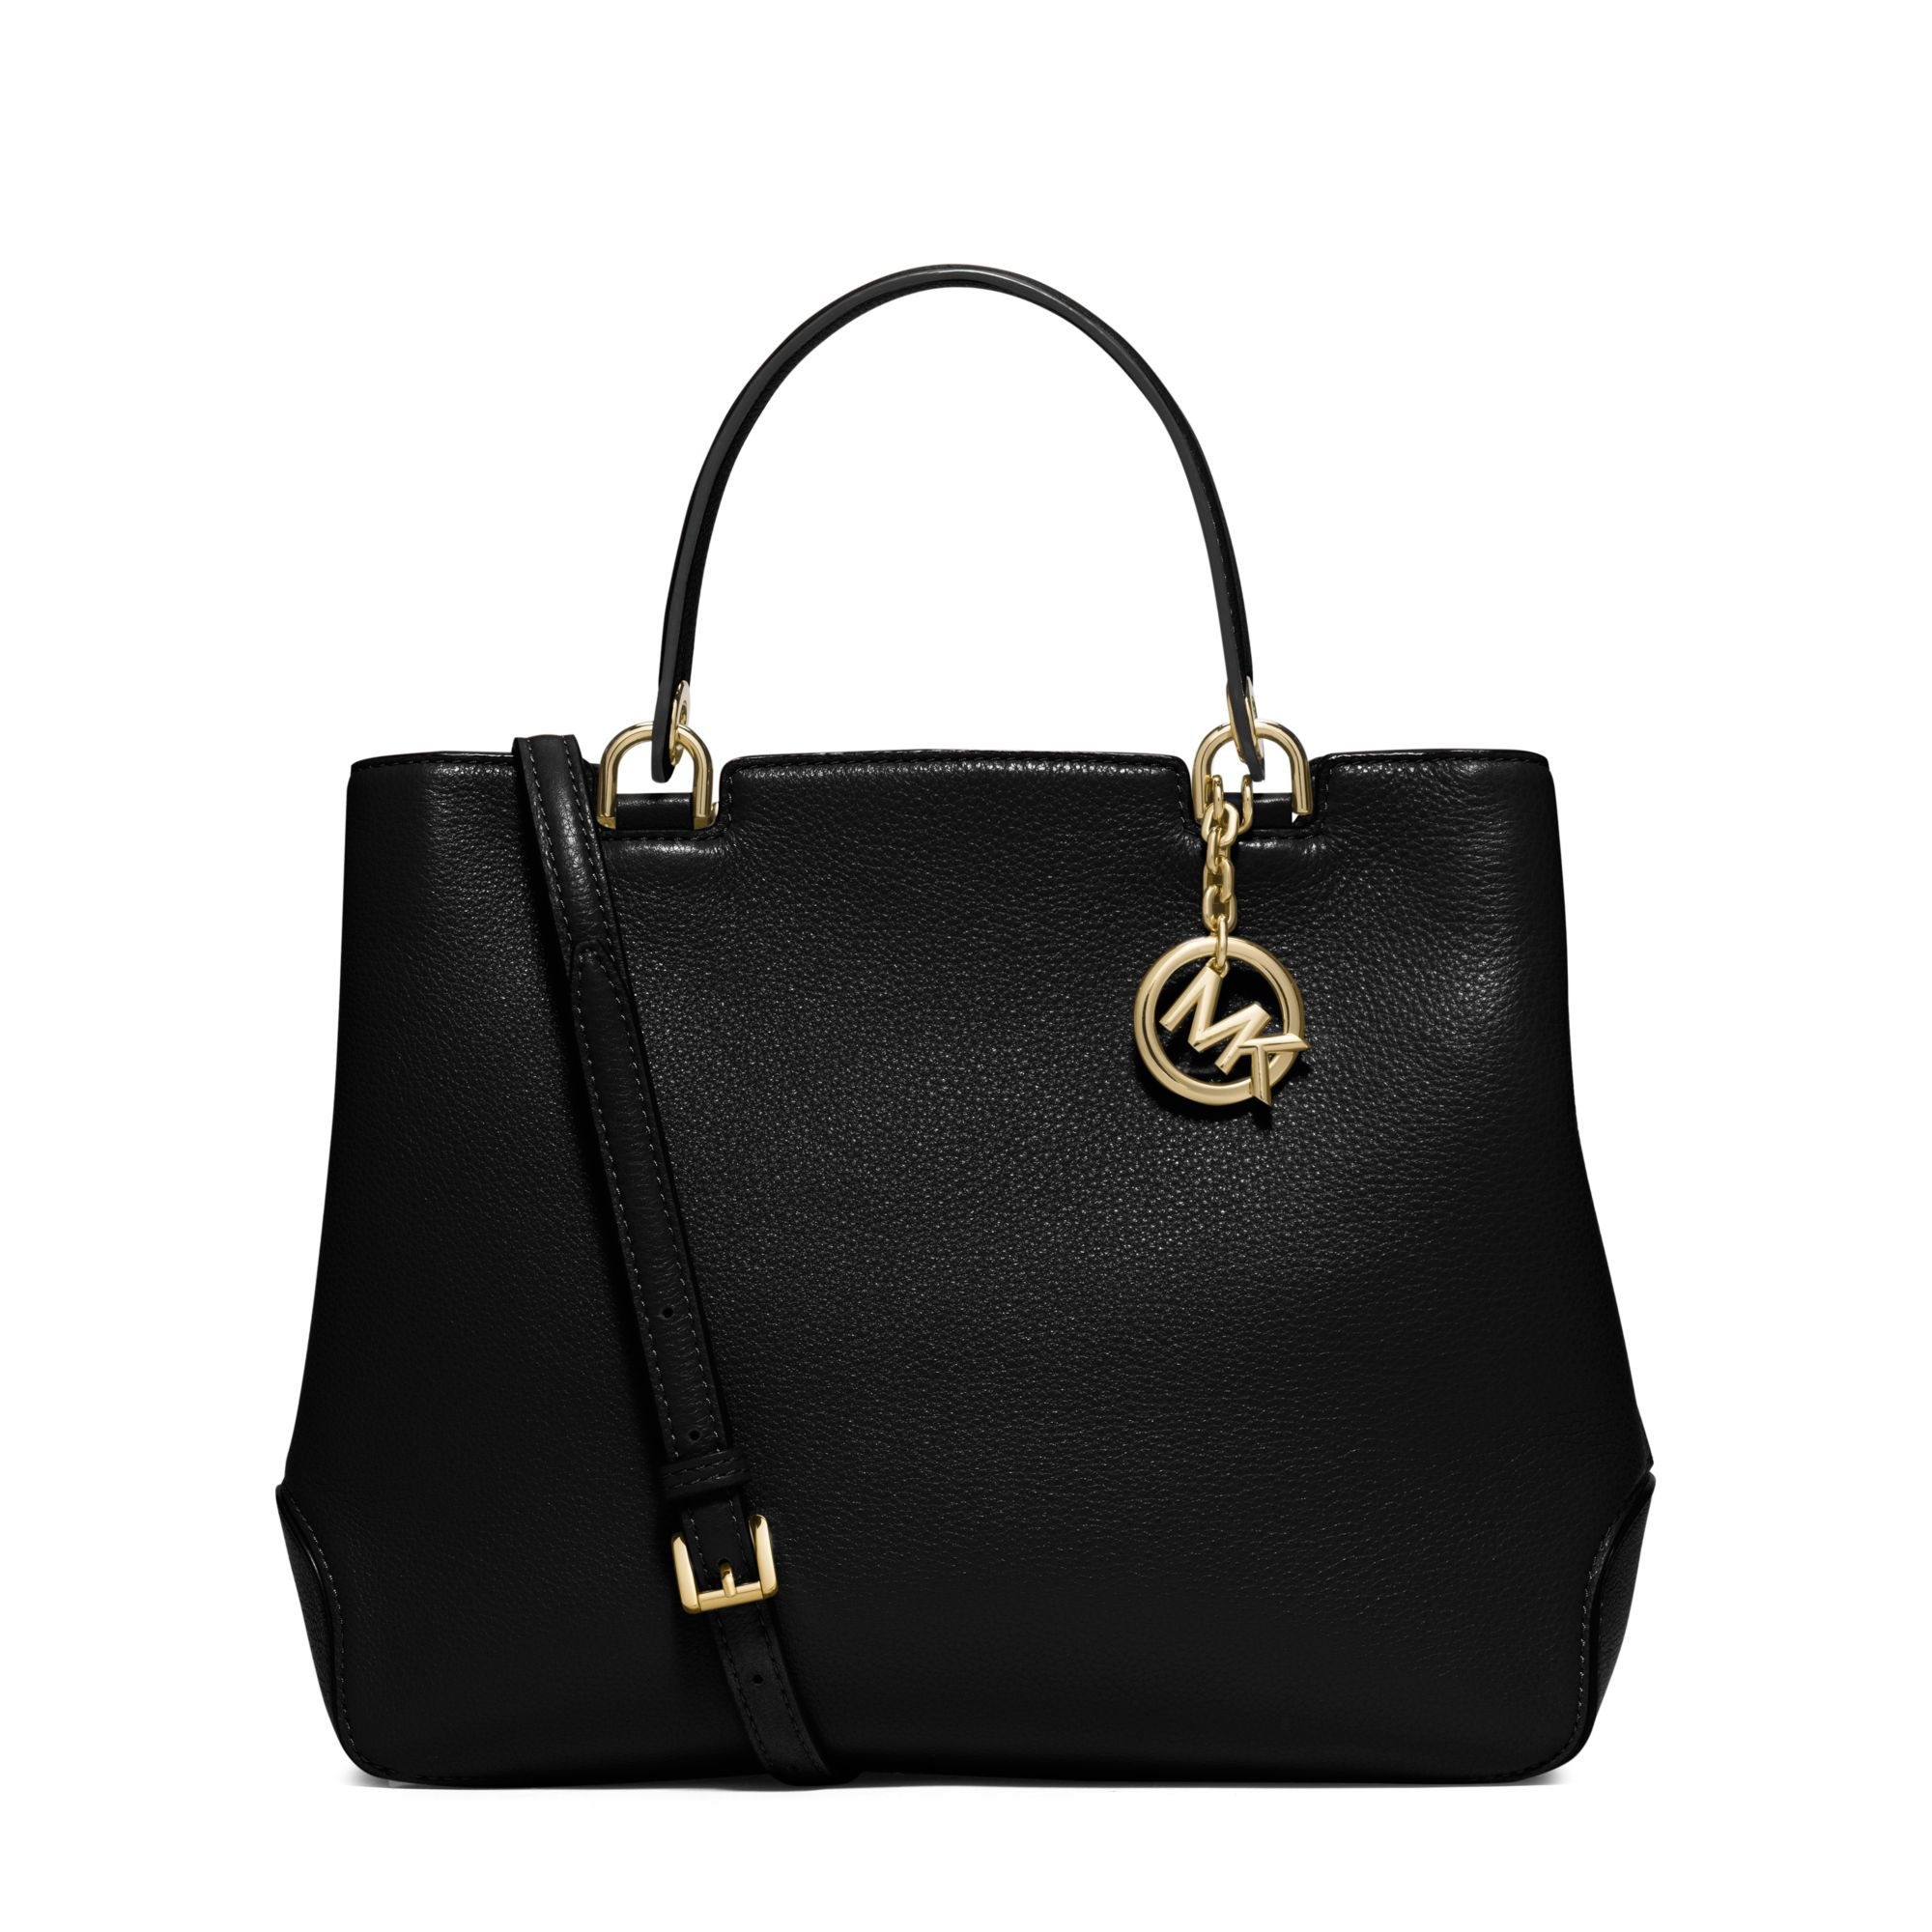 Michael kors Anabelle Large Leather Tote in Metallic | Lyst